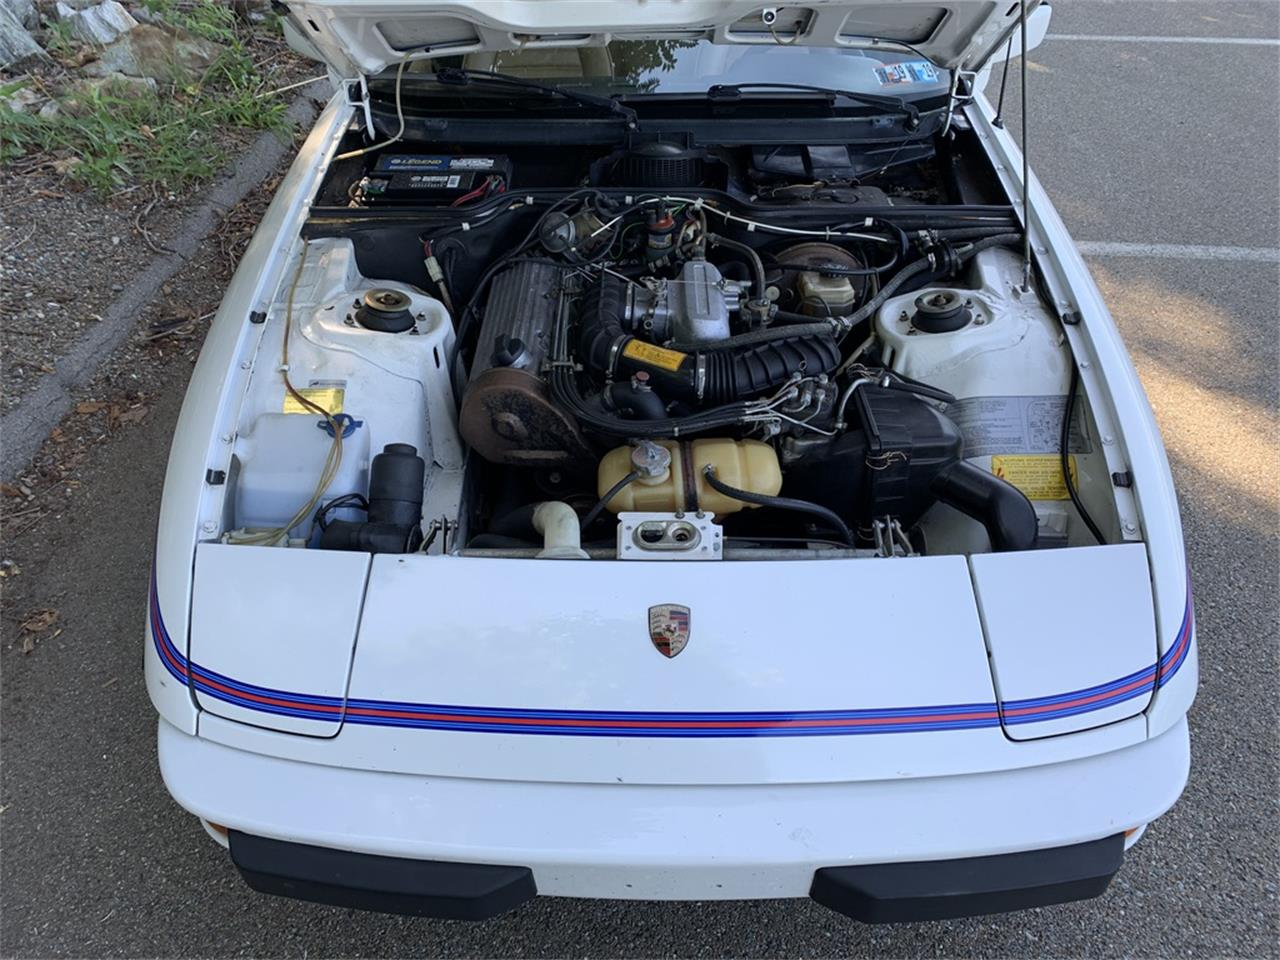 Large Picture of '80 Porsche 924 located in Little Britain Pennsylvania - $14,900.00 - OWYP